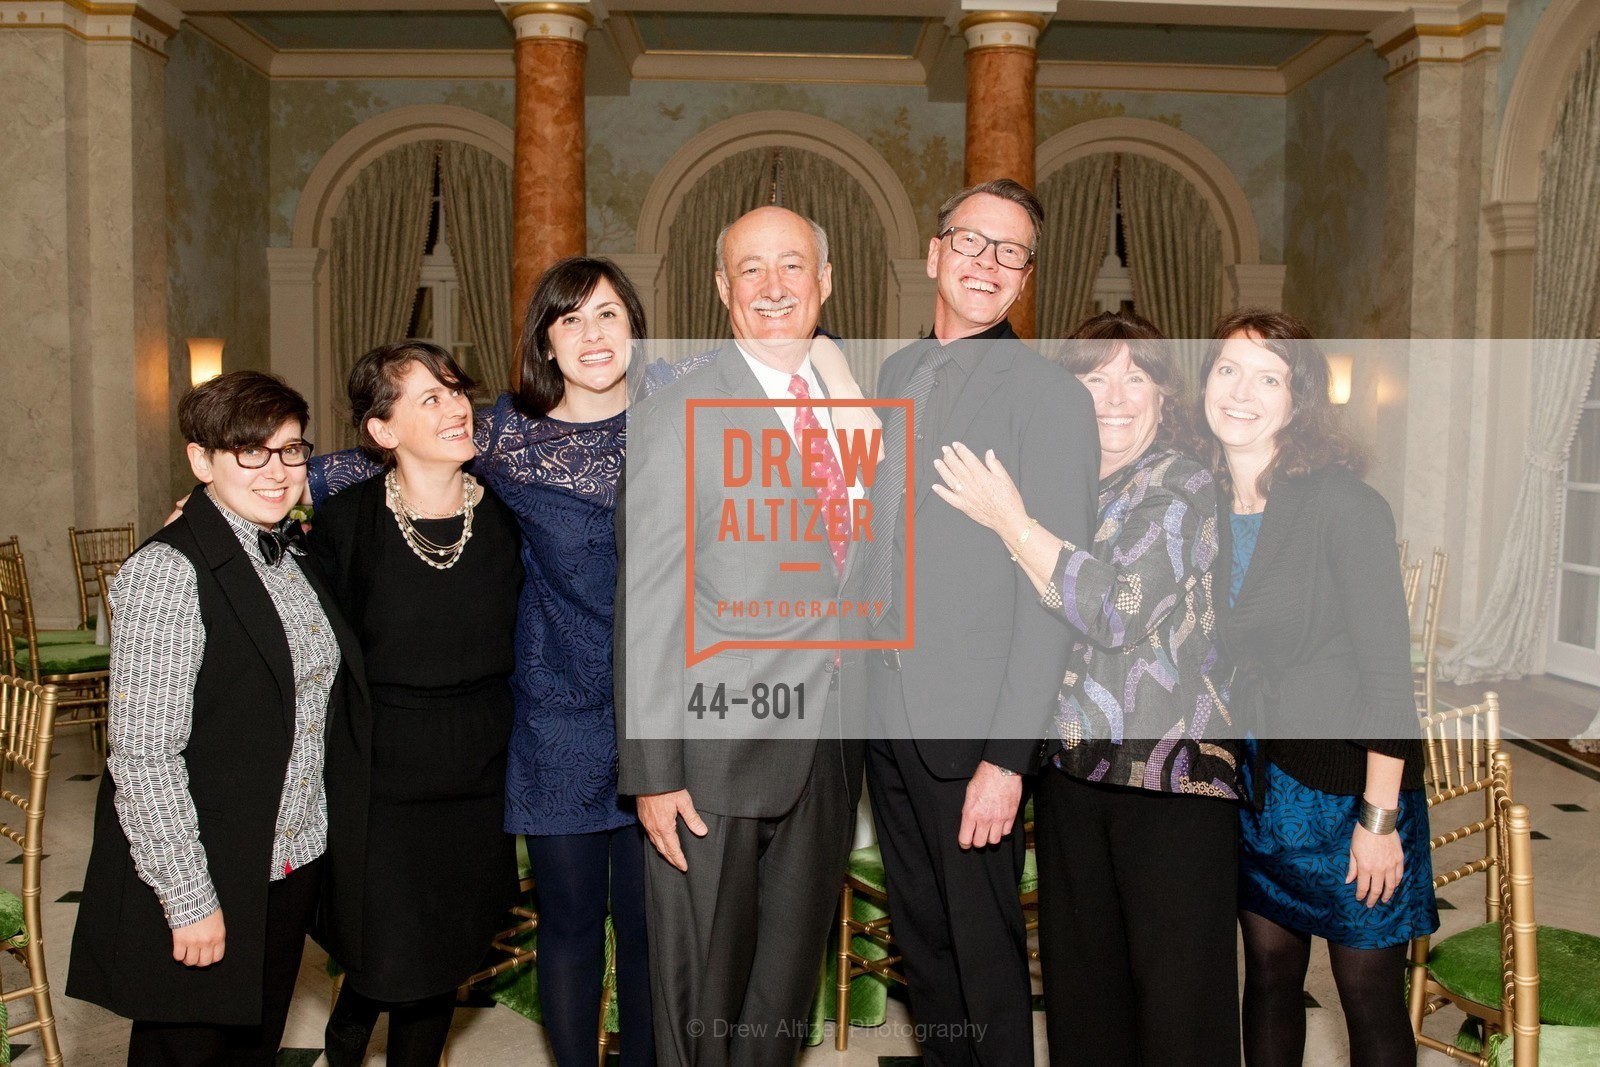 Ariel Johnson, Meredith Johnson, Sharal Camisa, Don Dana, H Gregory, Paddy Moore, Rachel Roberts, GETTY Hosts Leakey Foundation Dinner, US, April 24th, 2015,Drew Altizer, Drew Altizer Photography, full-service agency, private events, San Francisco photographer, photographer california